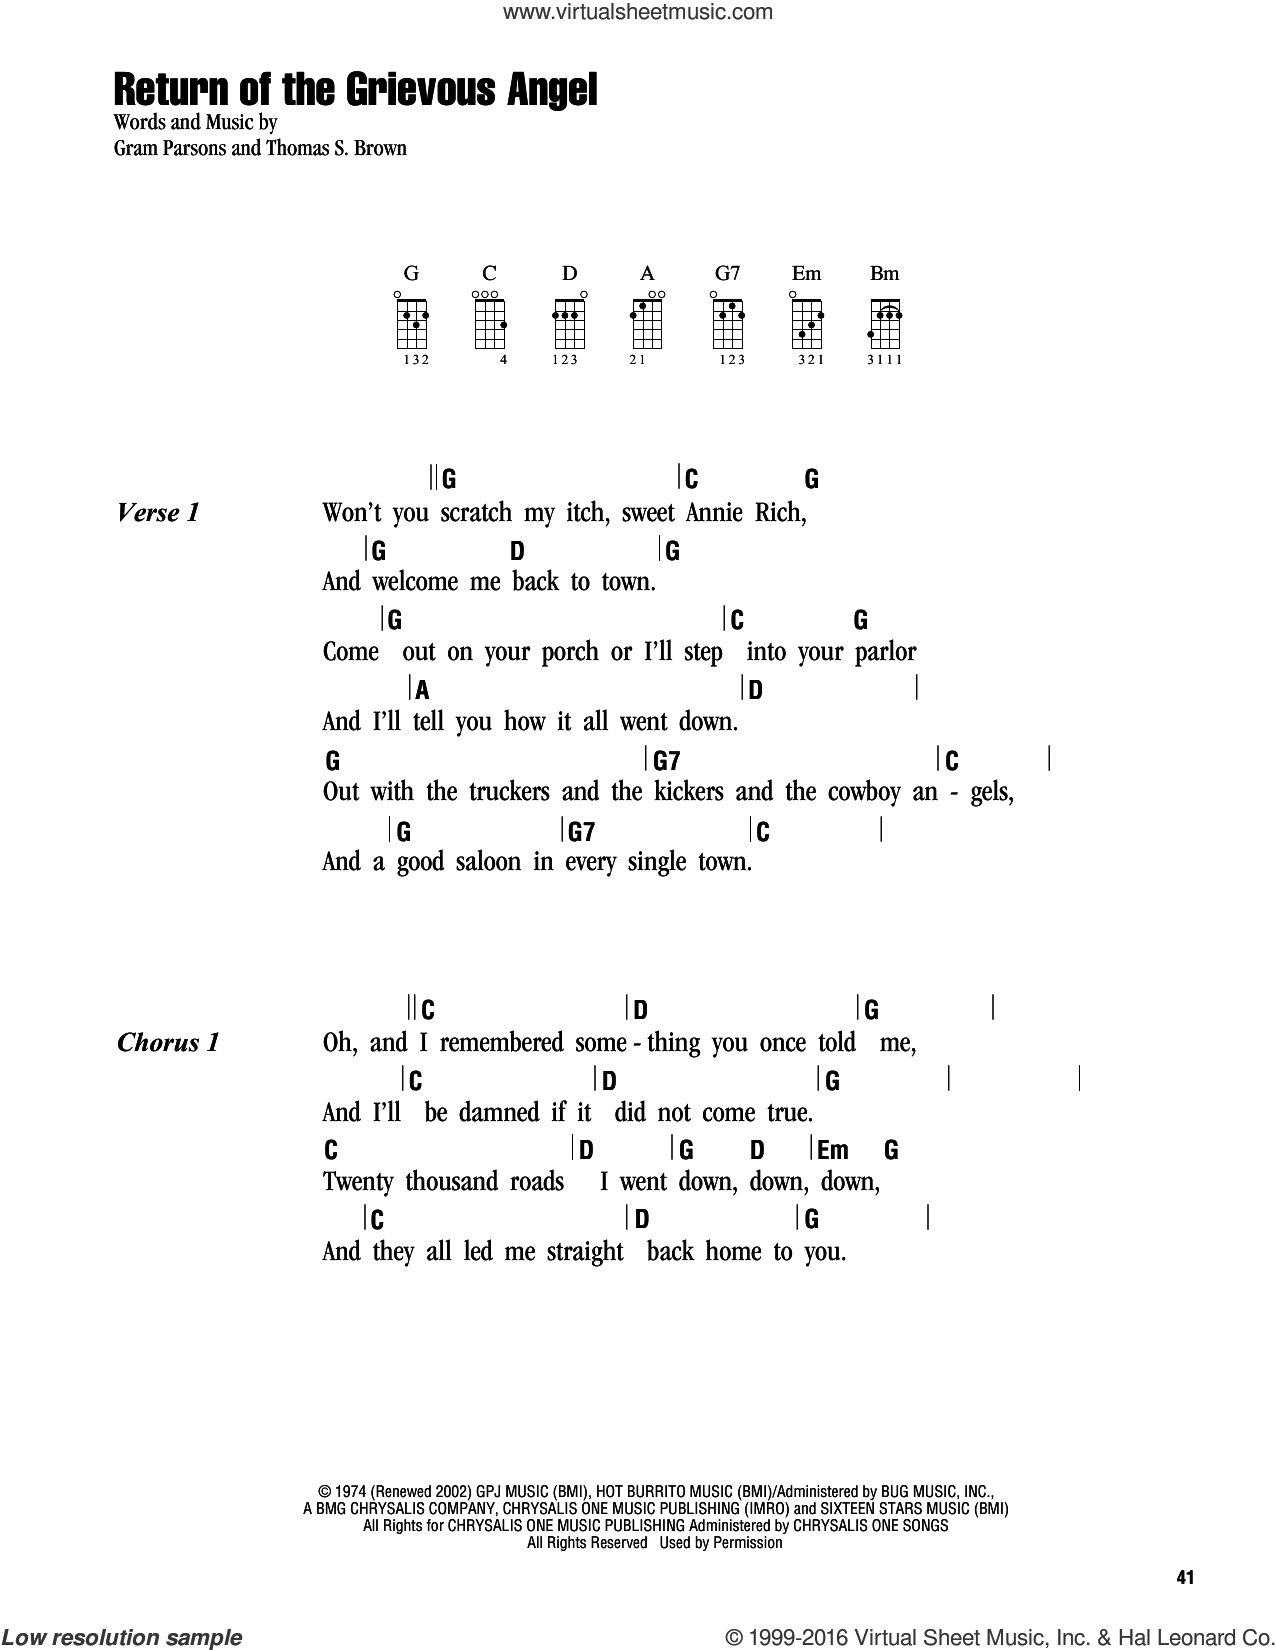 Return Of The Grievous Angel sheet music for ukulele (chords) by Gram Parsons and Thomas S. Brown, intermediate skill level